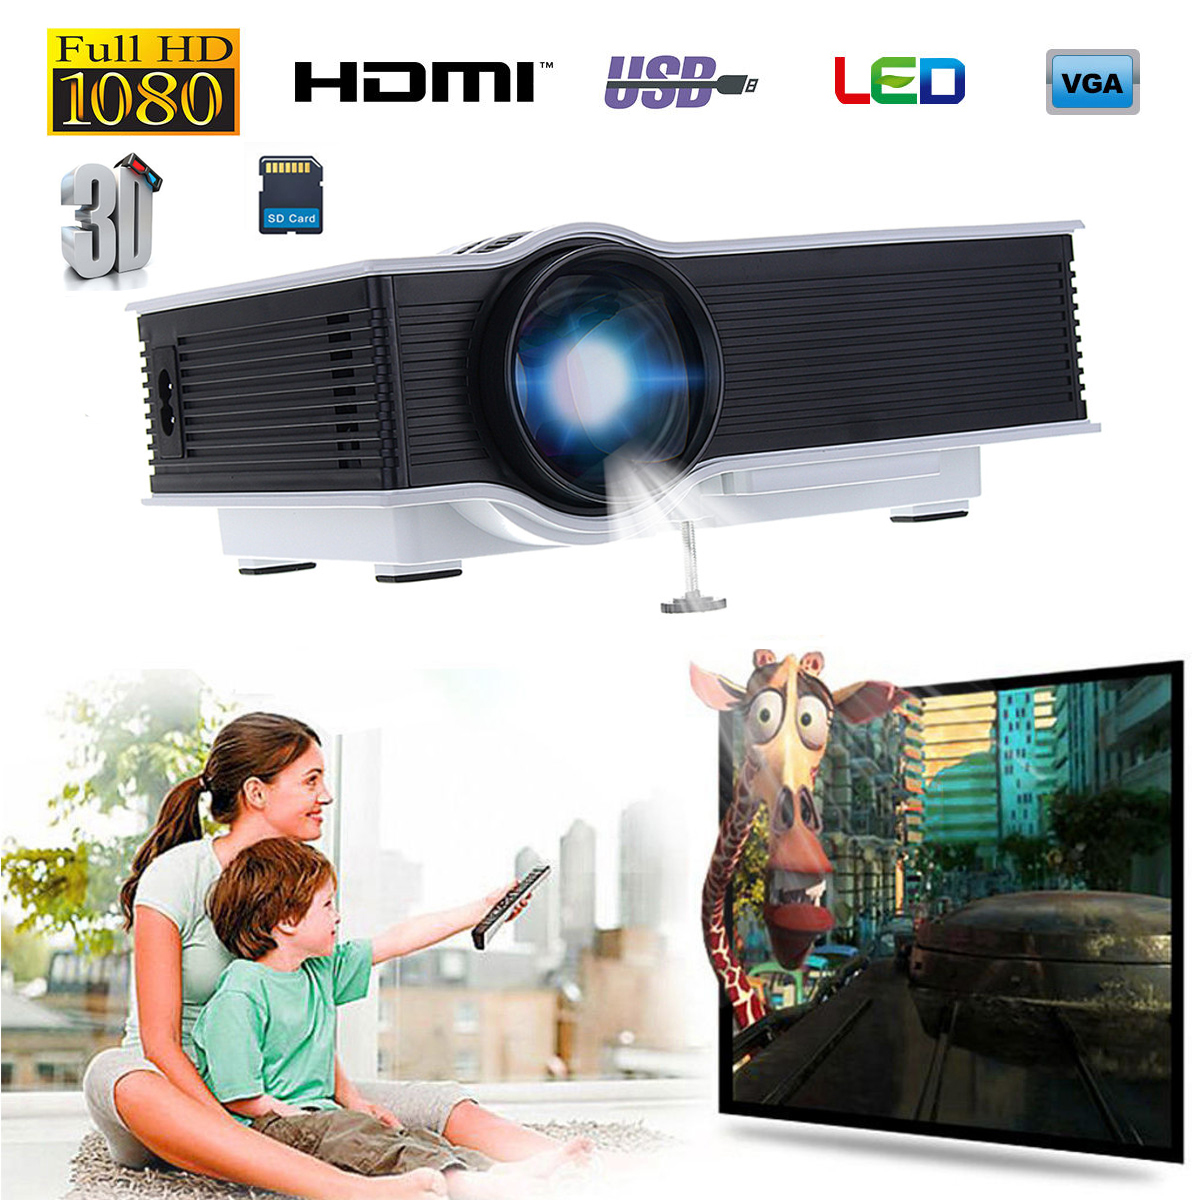 For GIGXON G40 1200 LM 1080P Led Projector Full HD Compatible Home Portable Mini Projector HDMI